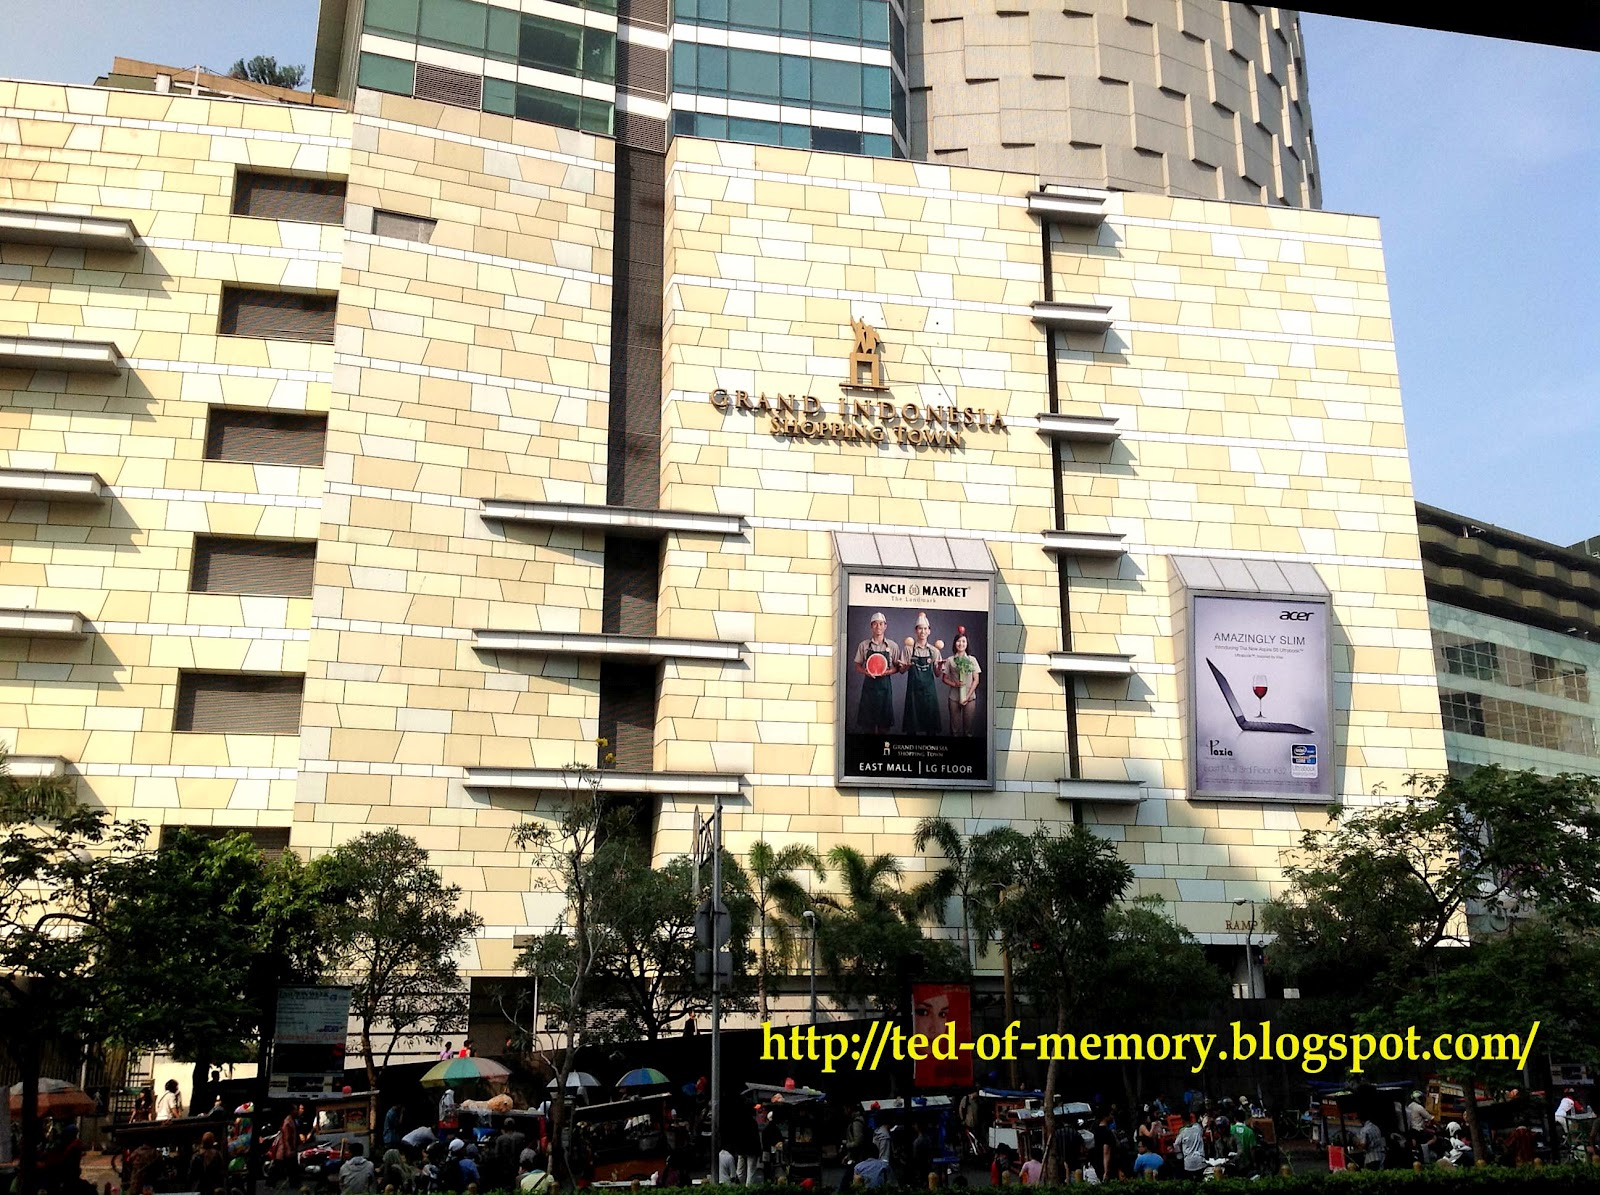 Tedtrilogy Grand Indonesia Shopping Town Jakarta Indonesia